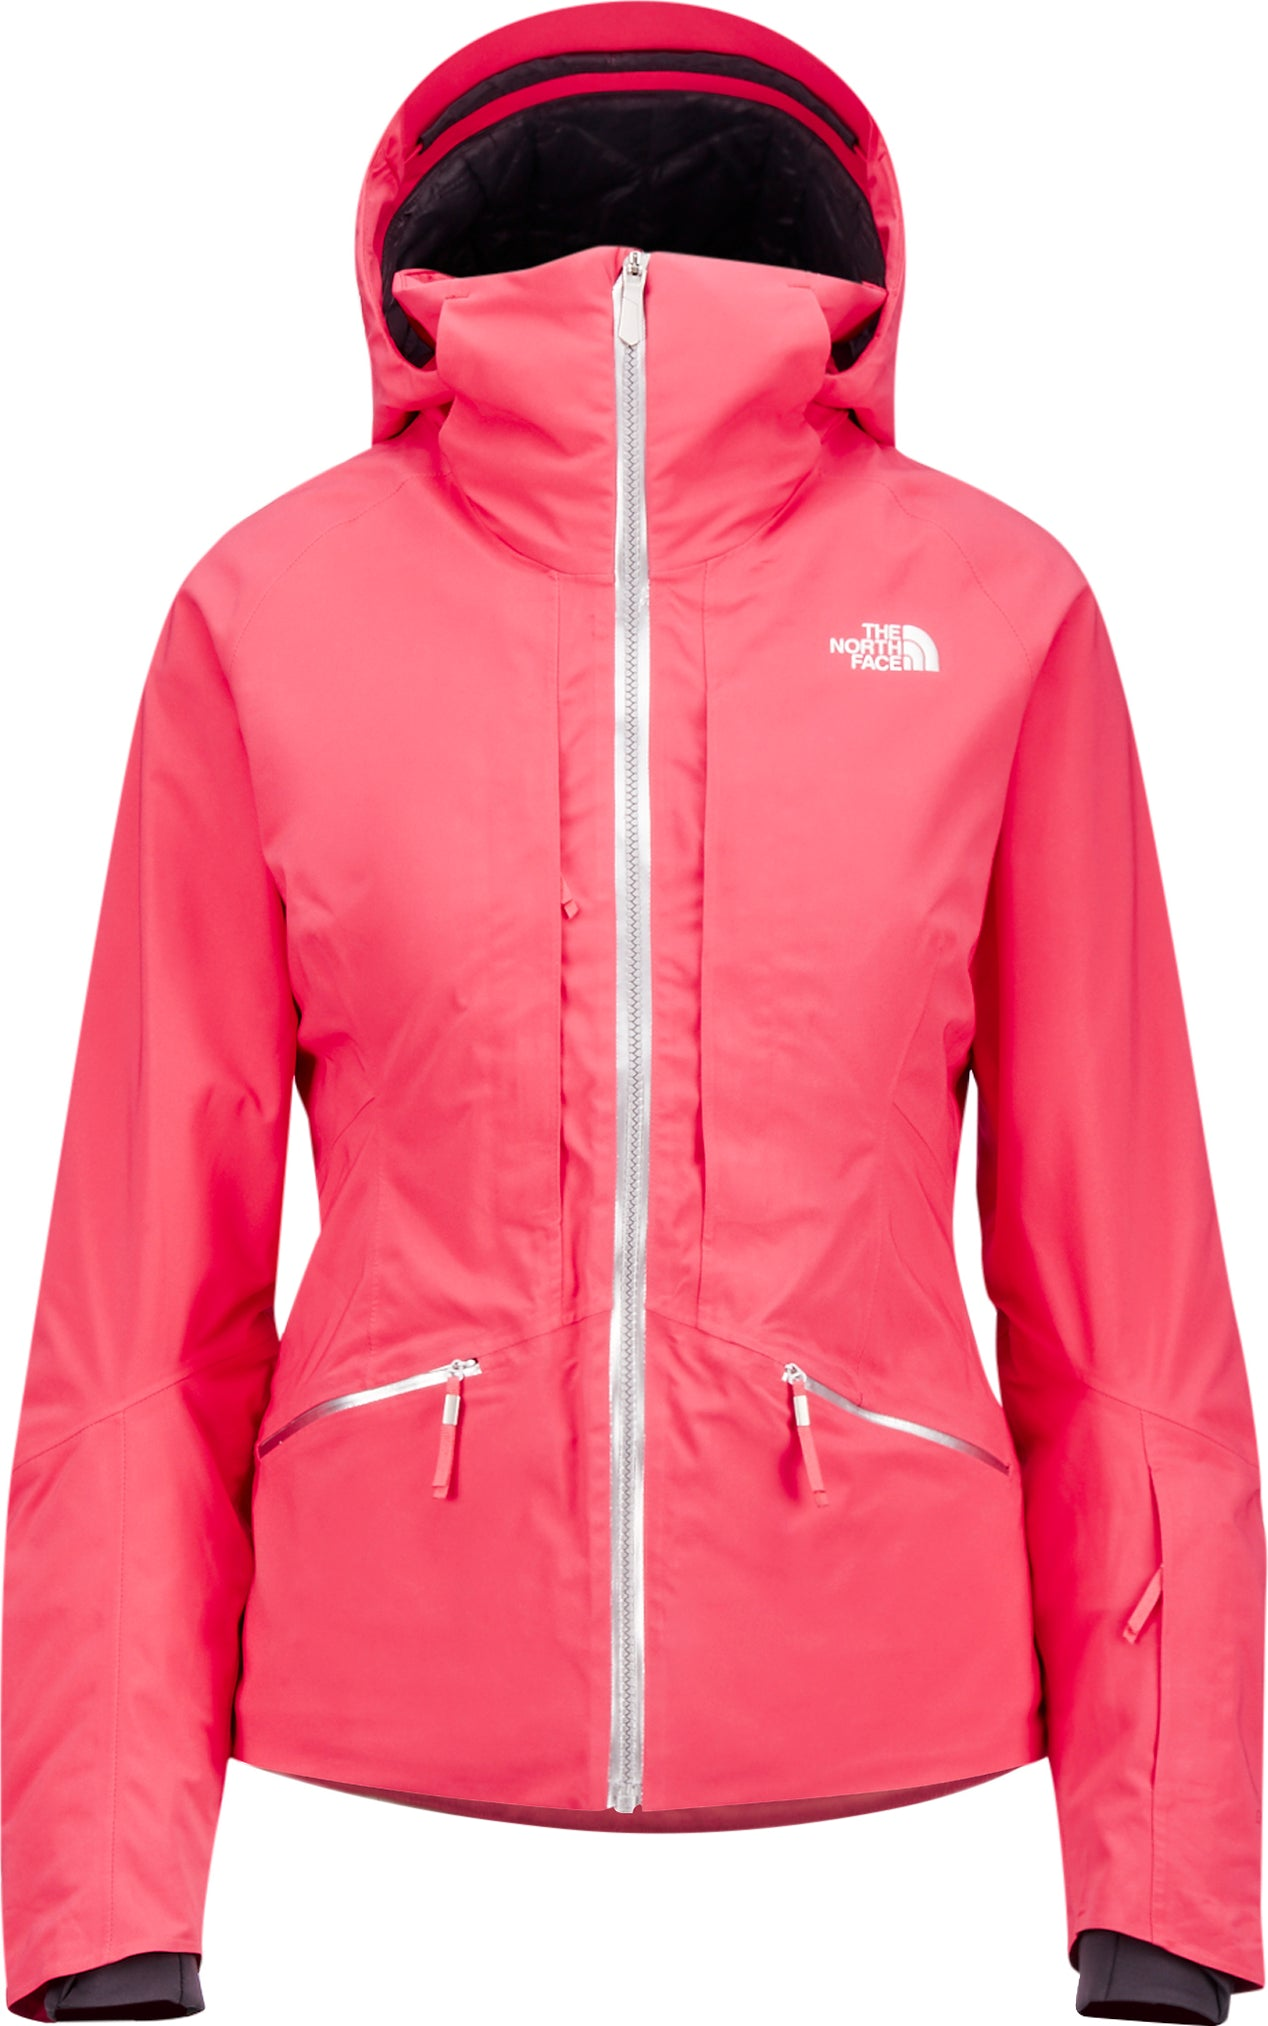 79ec0a6a0 The North Face Anonym Jacket - Women's